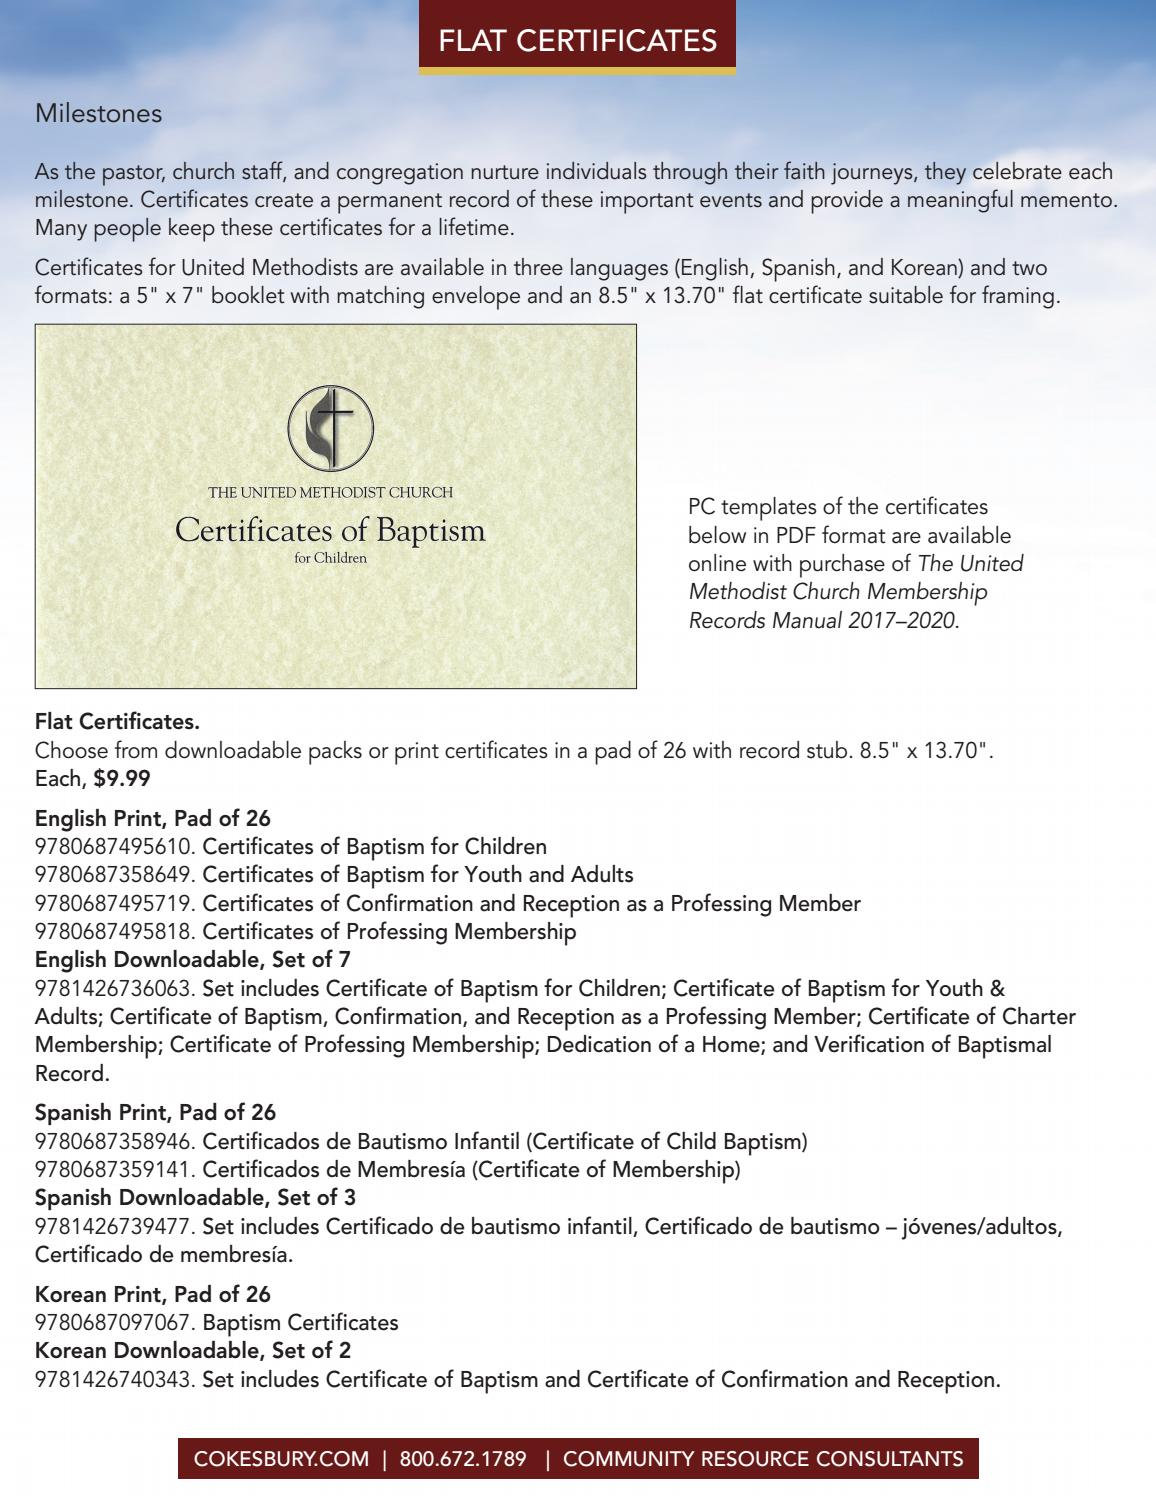 Baby Baptism Certificate Peaceful Autumn Unique Baby Certificate Birth Certificates Documents And Designs